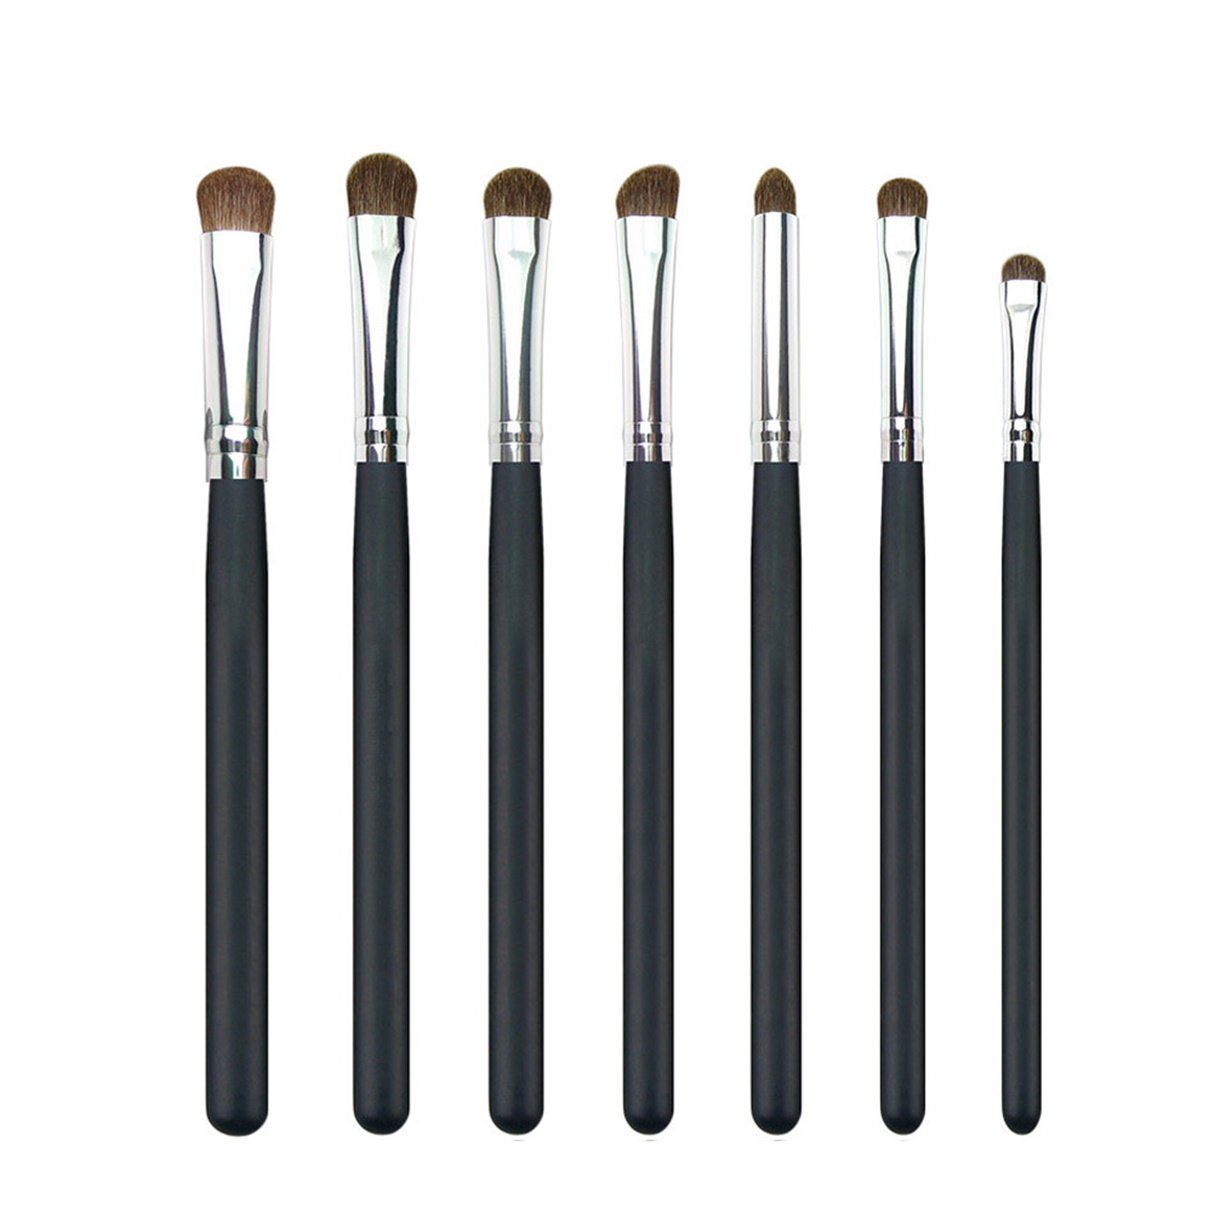 7 Pcs Natural Hair Makeup Brush Set Eyeshadow Eye Shadow Shader Blending Make Up Tool Foundation Beauty Palettes Vanity Deluxe Popular Eyes Face Colorful Rainbow Highlights Glitter Teens Travel Kit